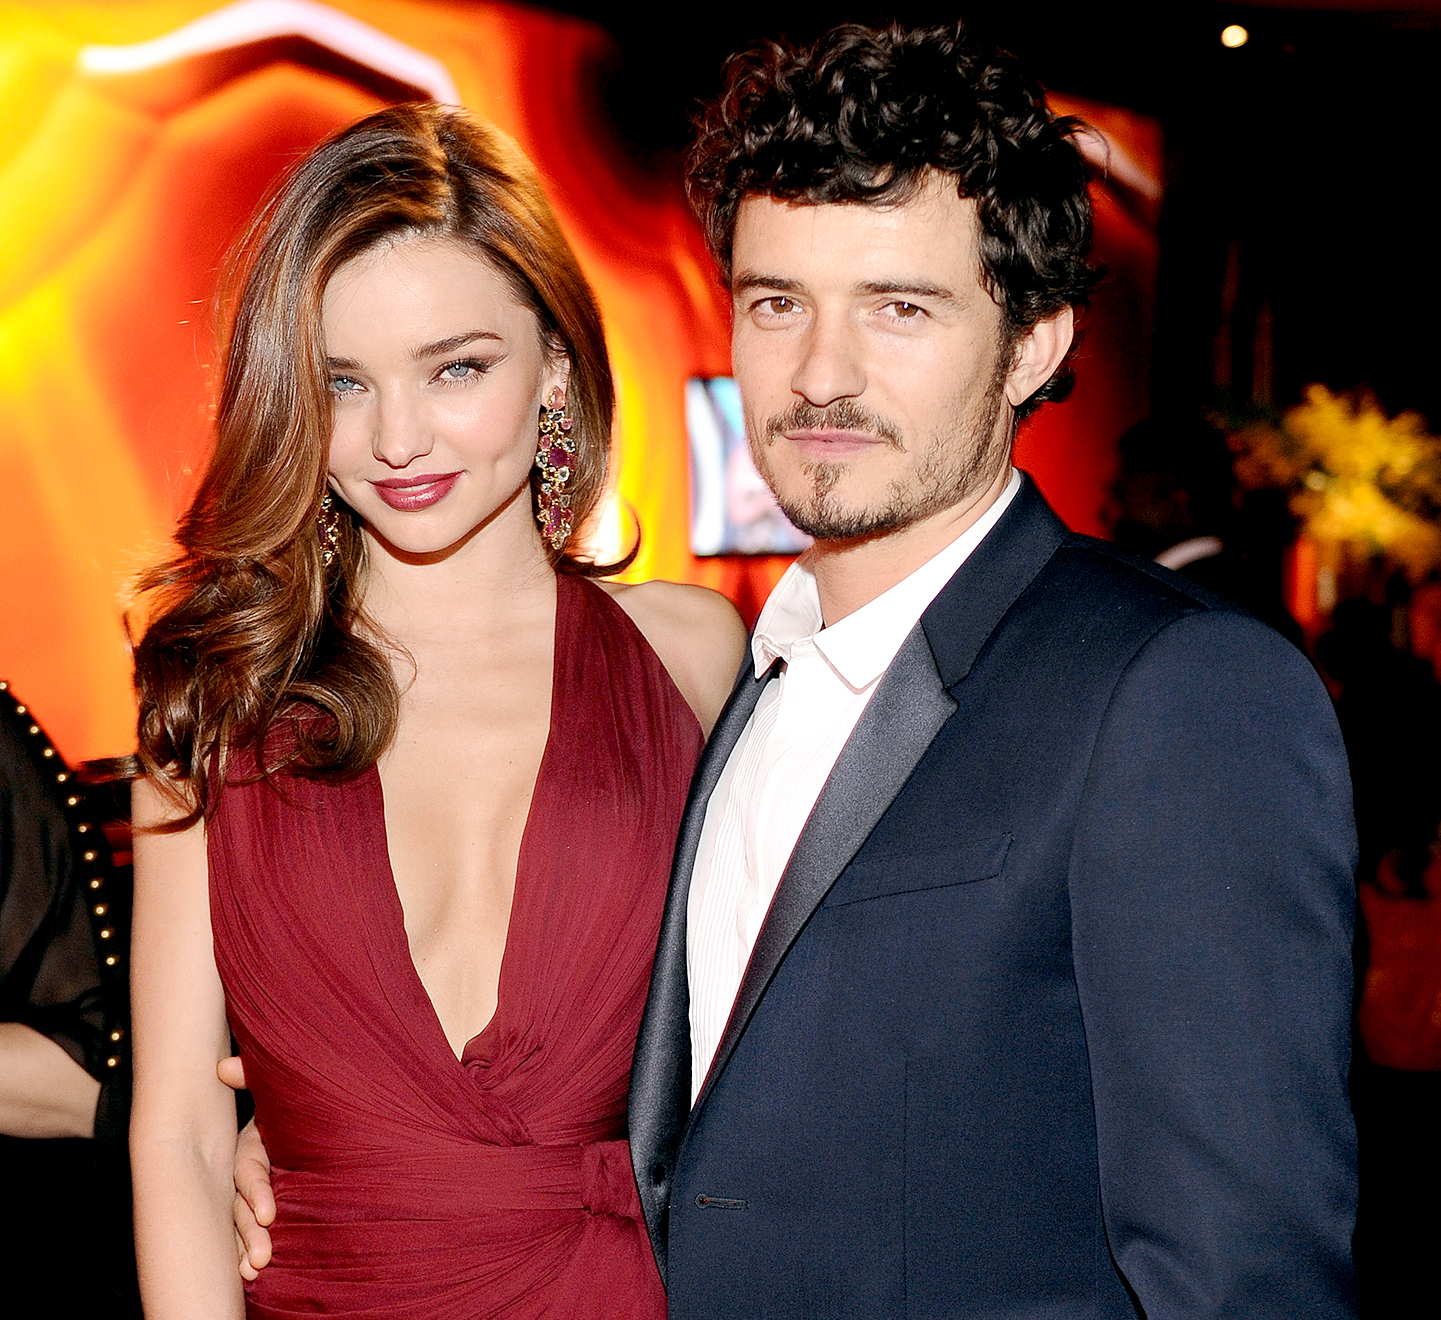 Orlando Bloom Wishes Amazing Ex Wife Miranda Kerr Happy Birthday